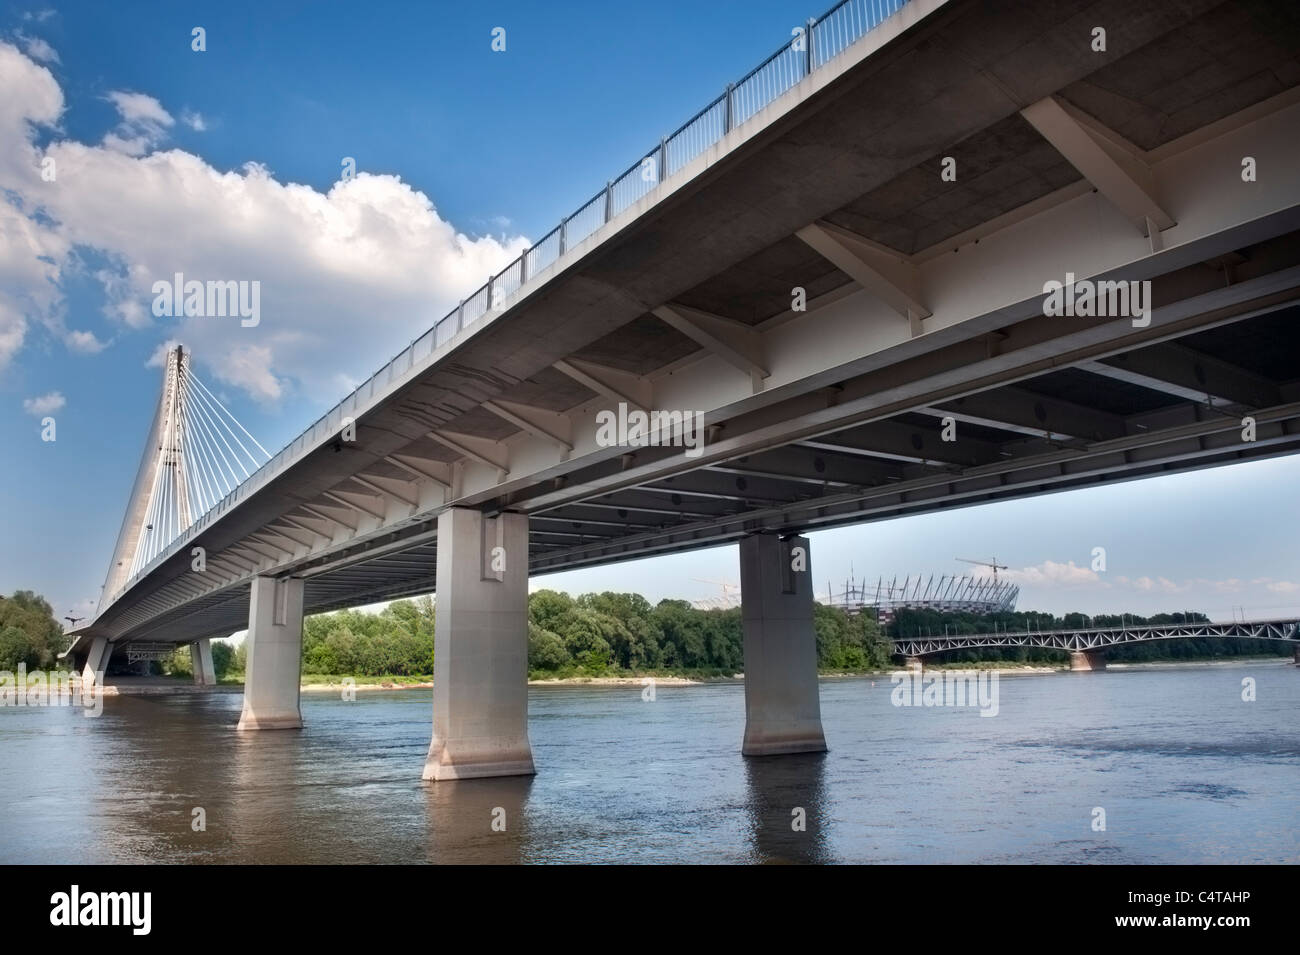 Modern bridge over Vistula (Wisla) river in Warsaw, Poland - Stock Image